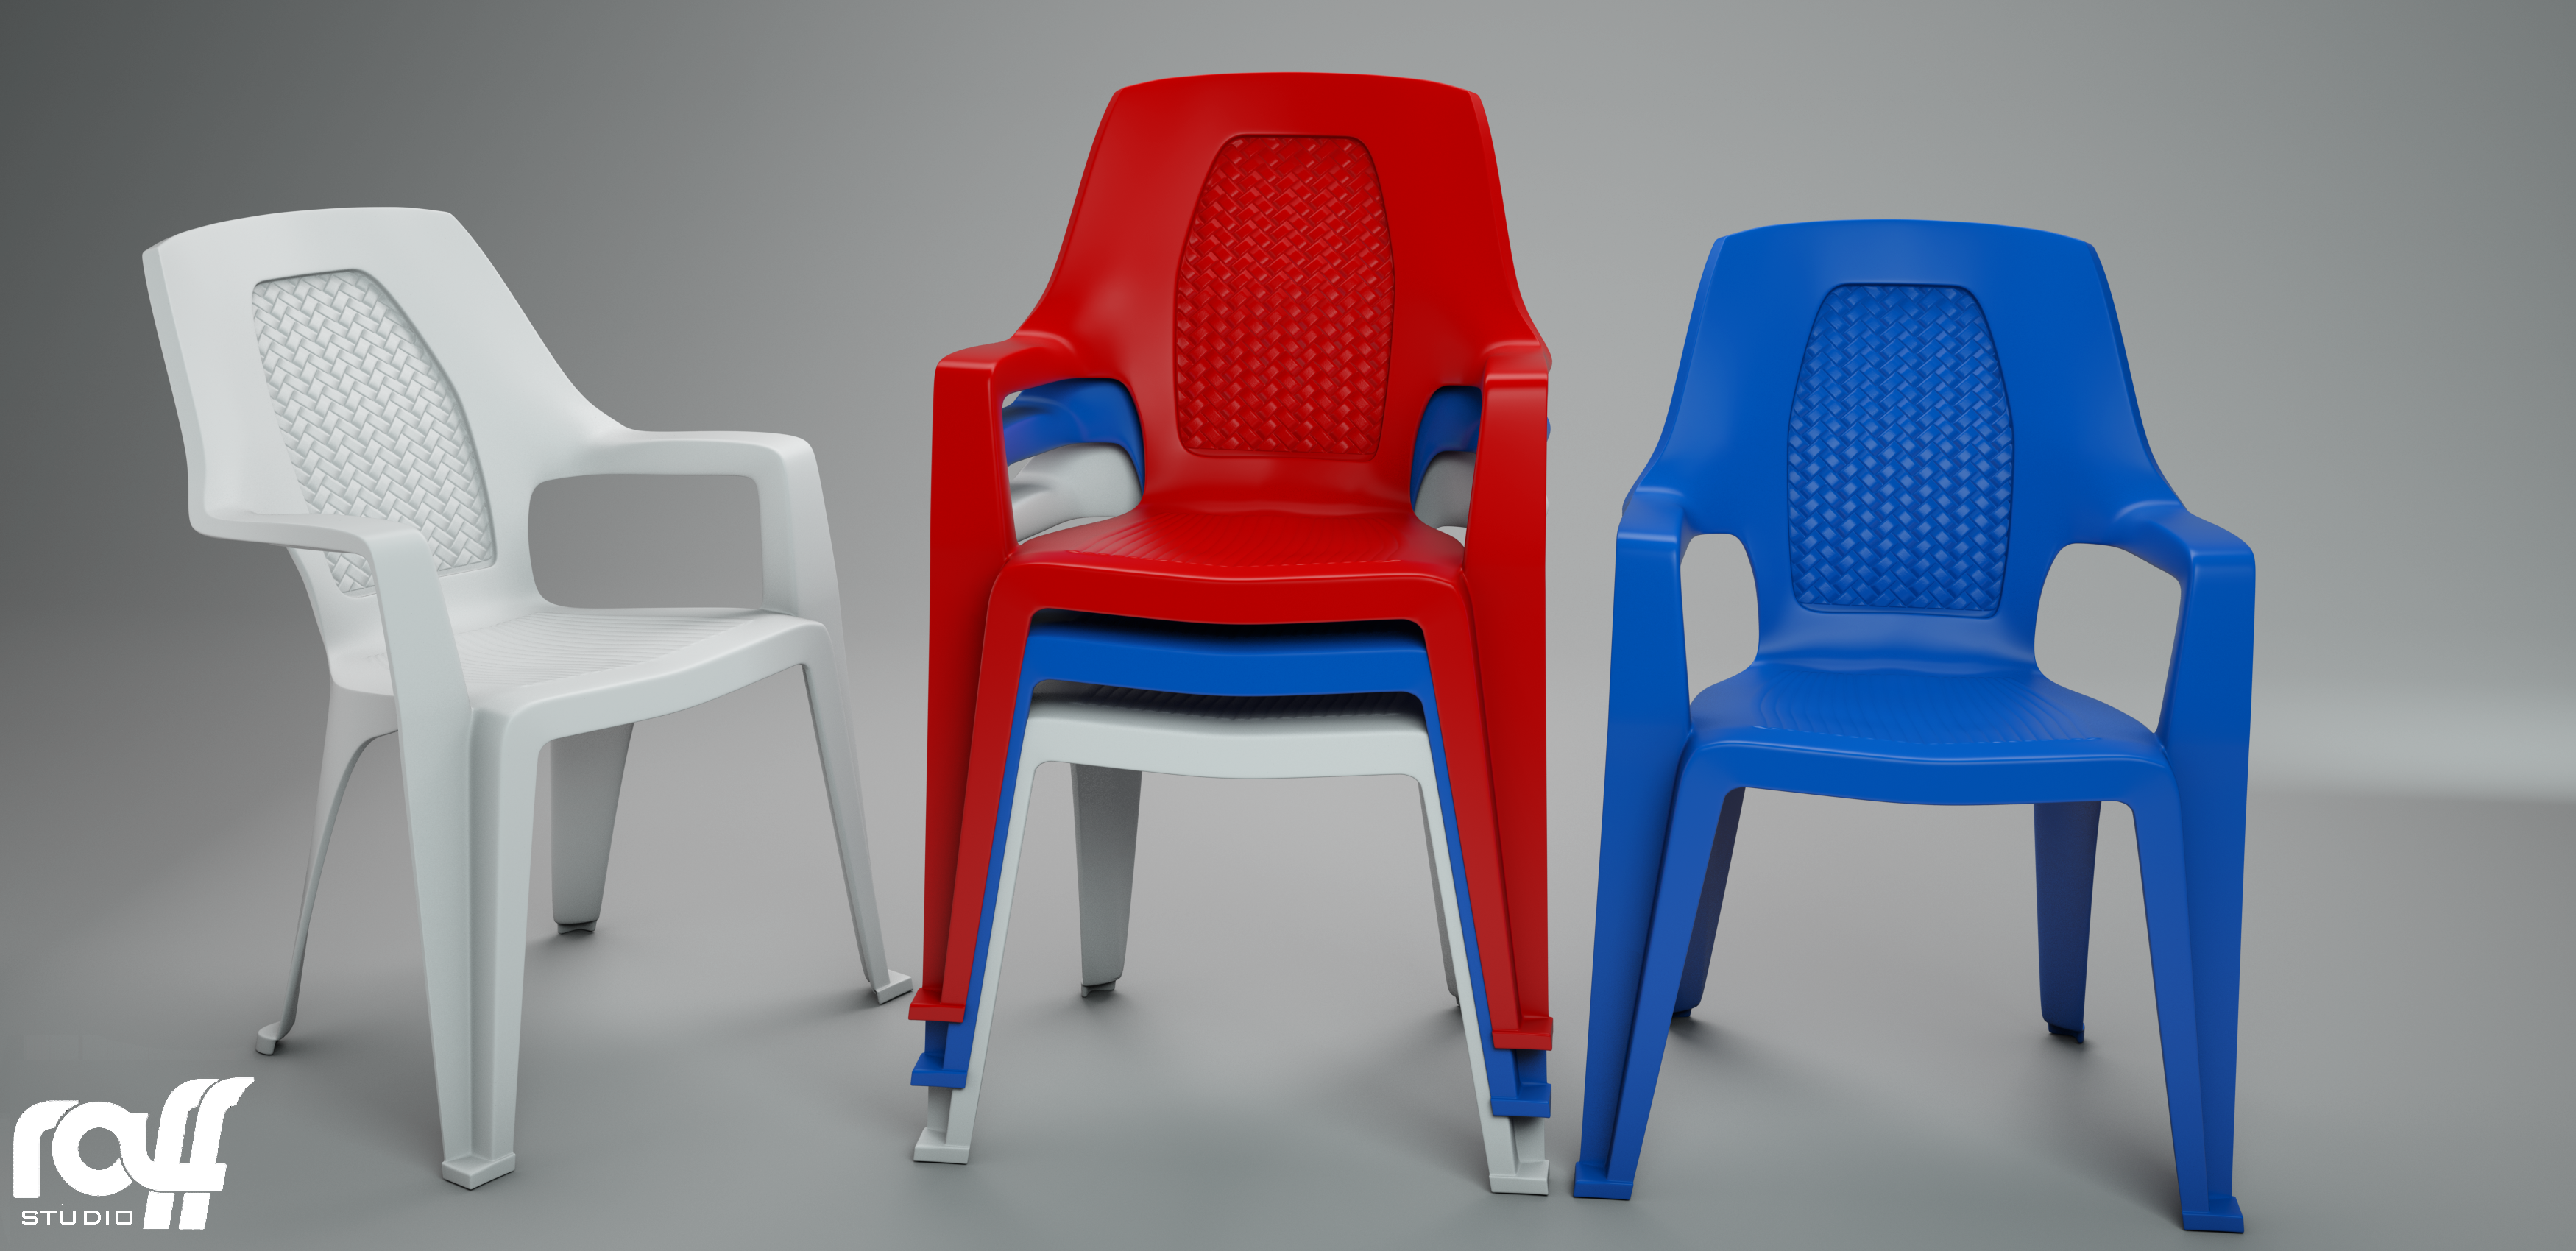 Plastic Chair By Raff Studio 3docean